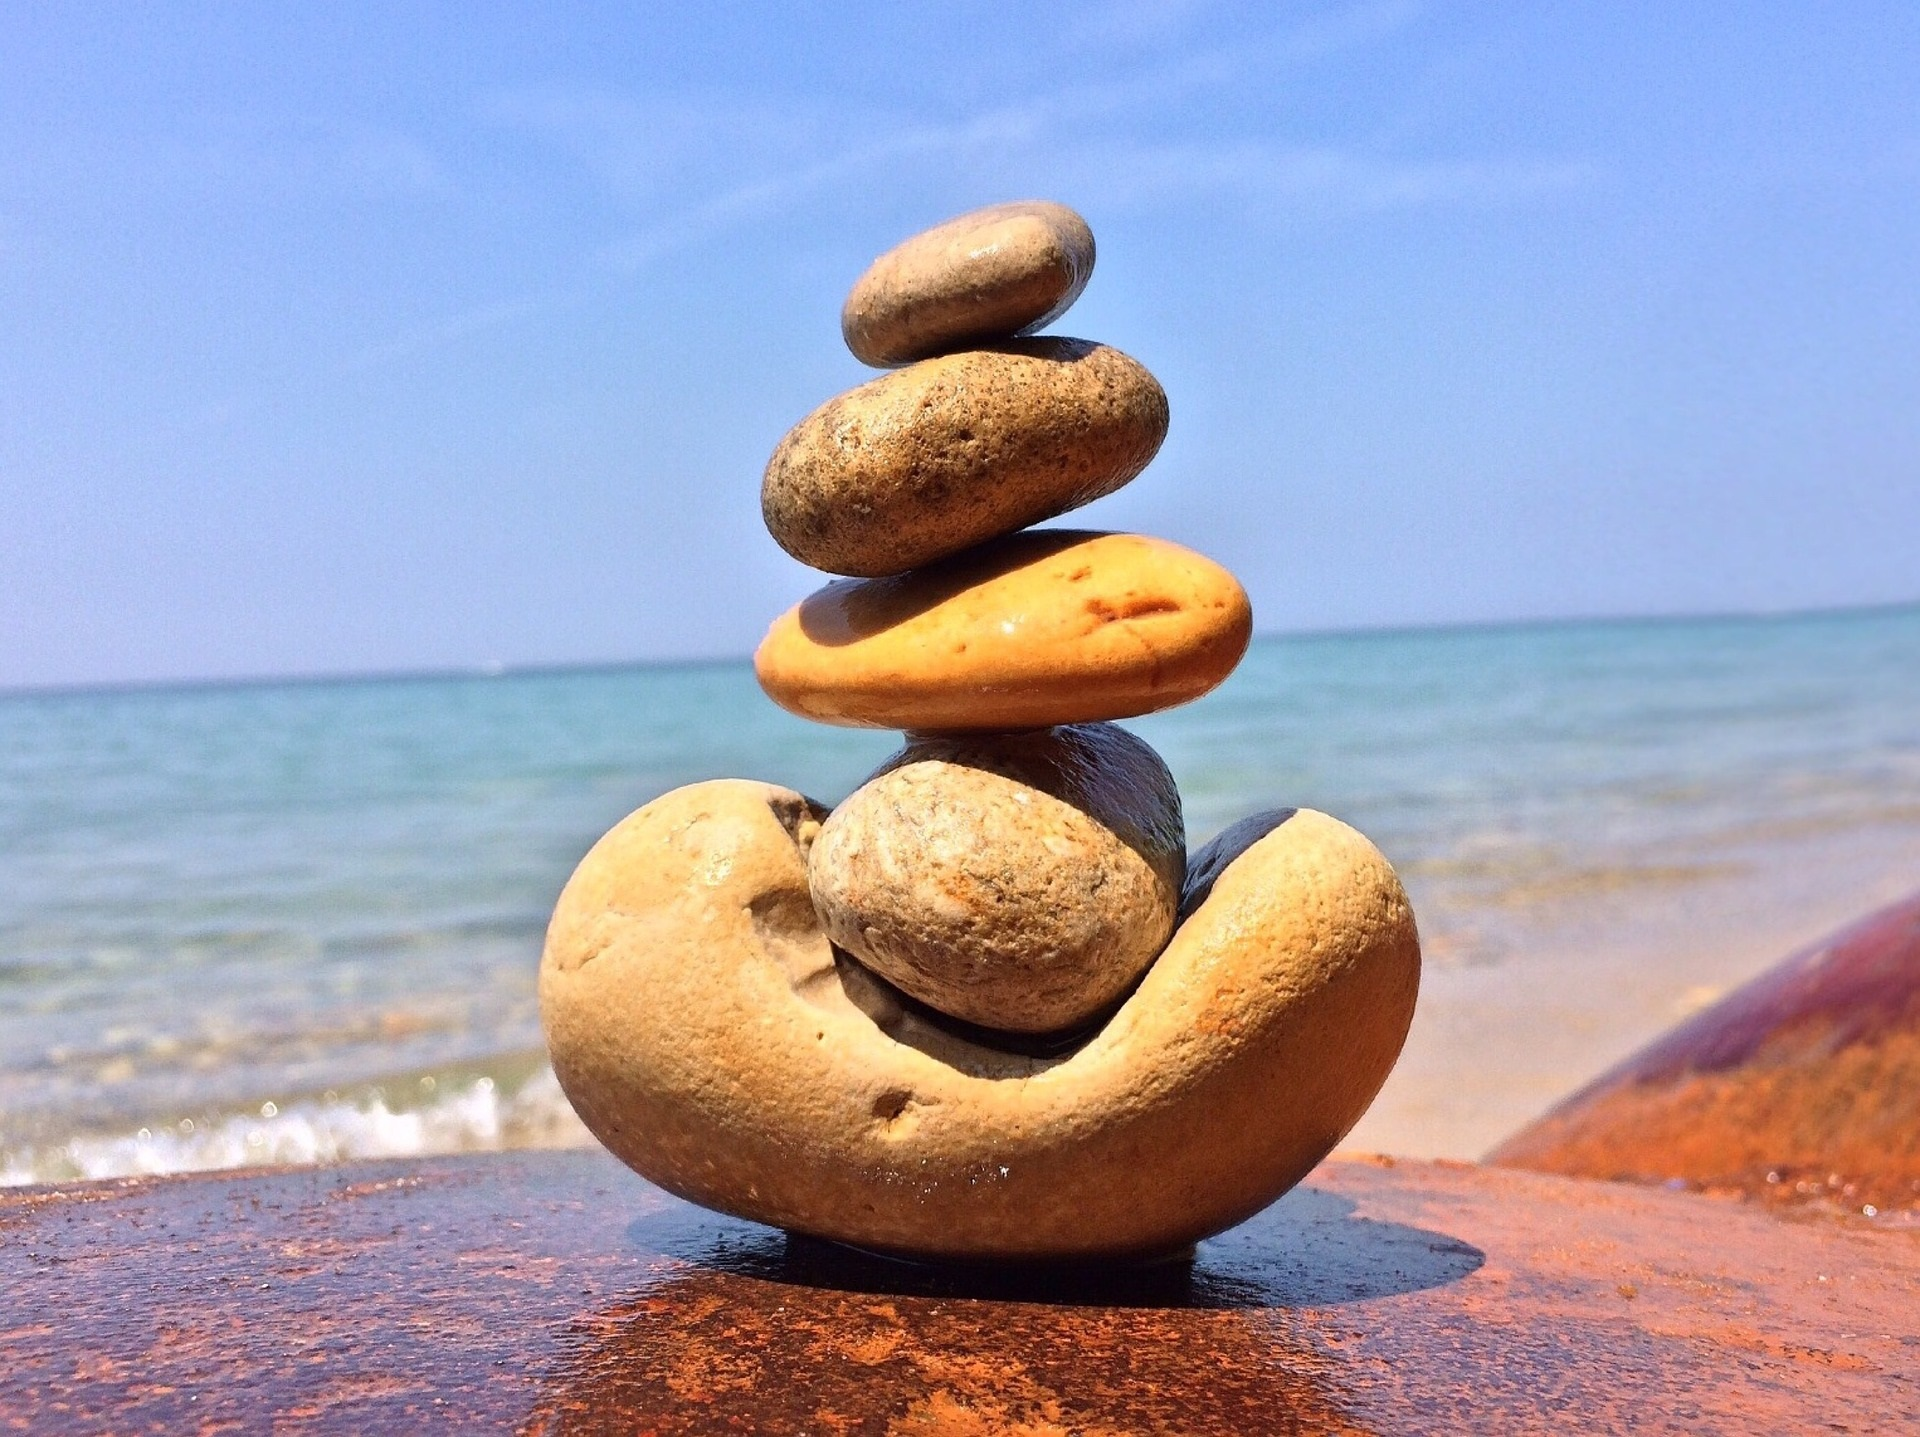 balanced stones at the water